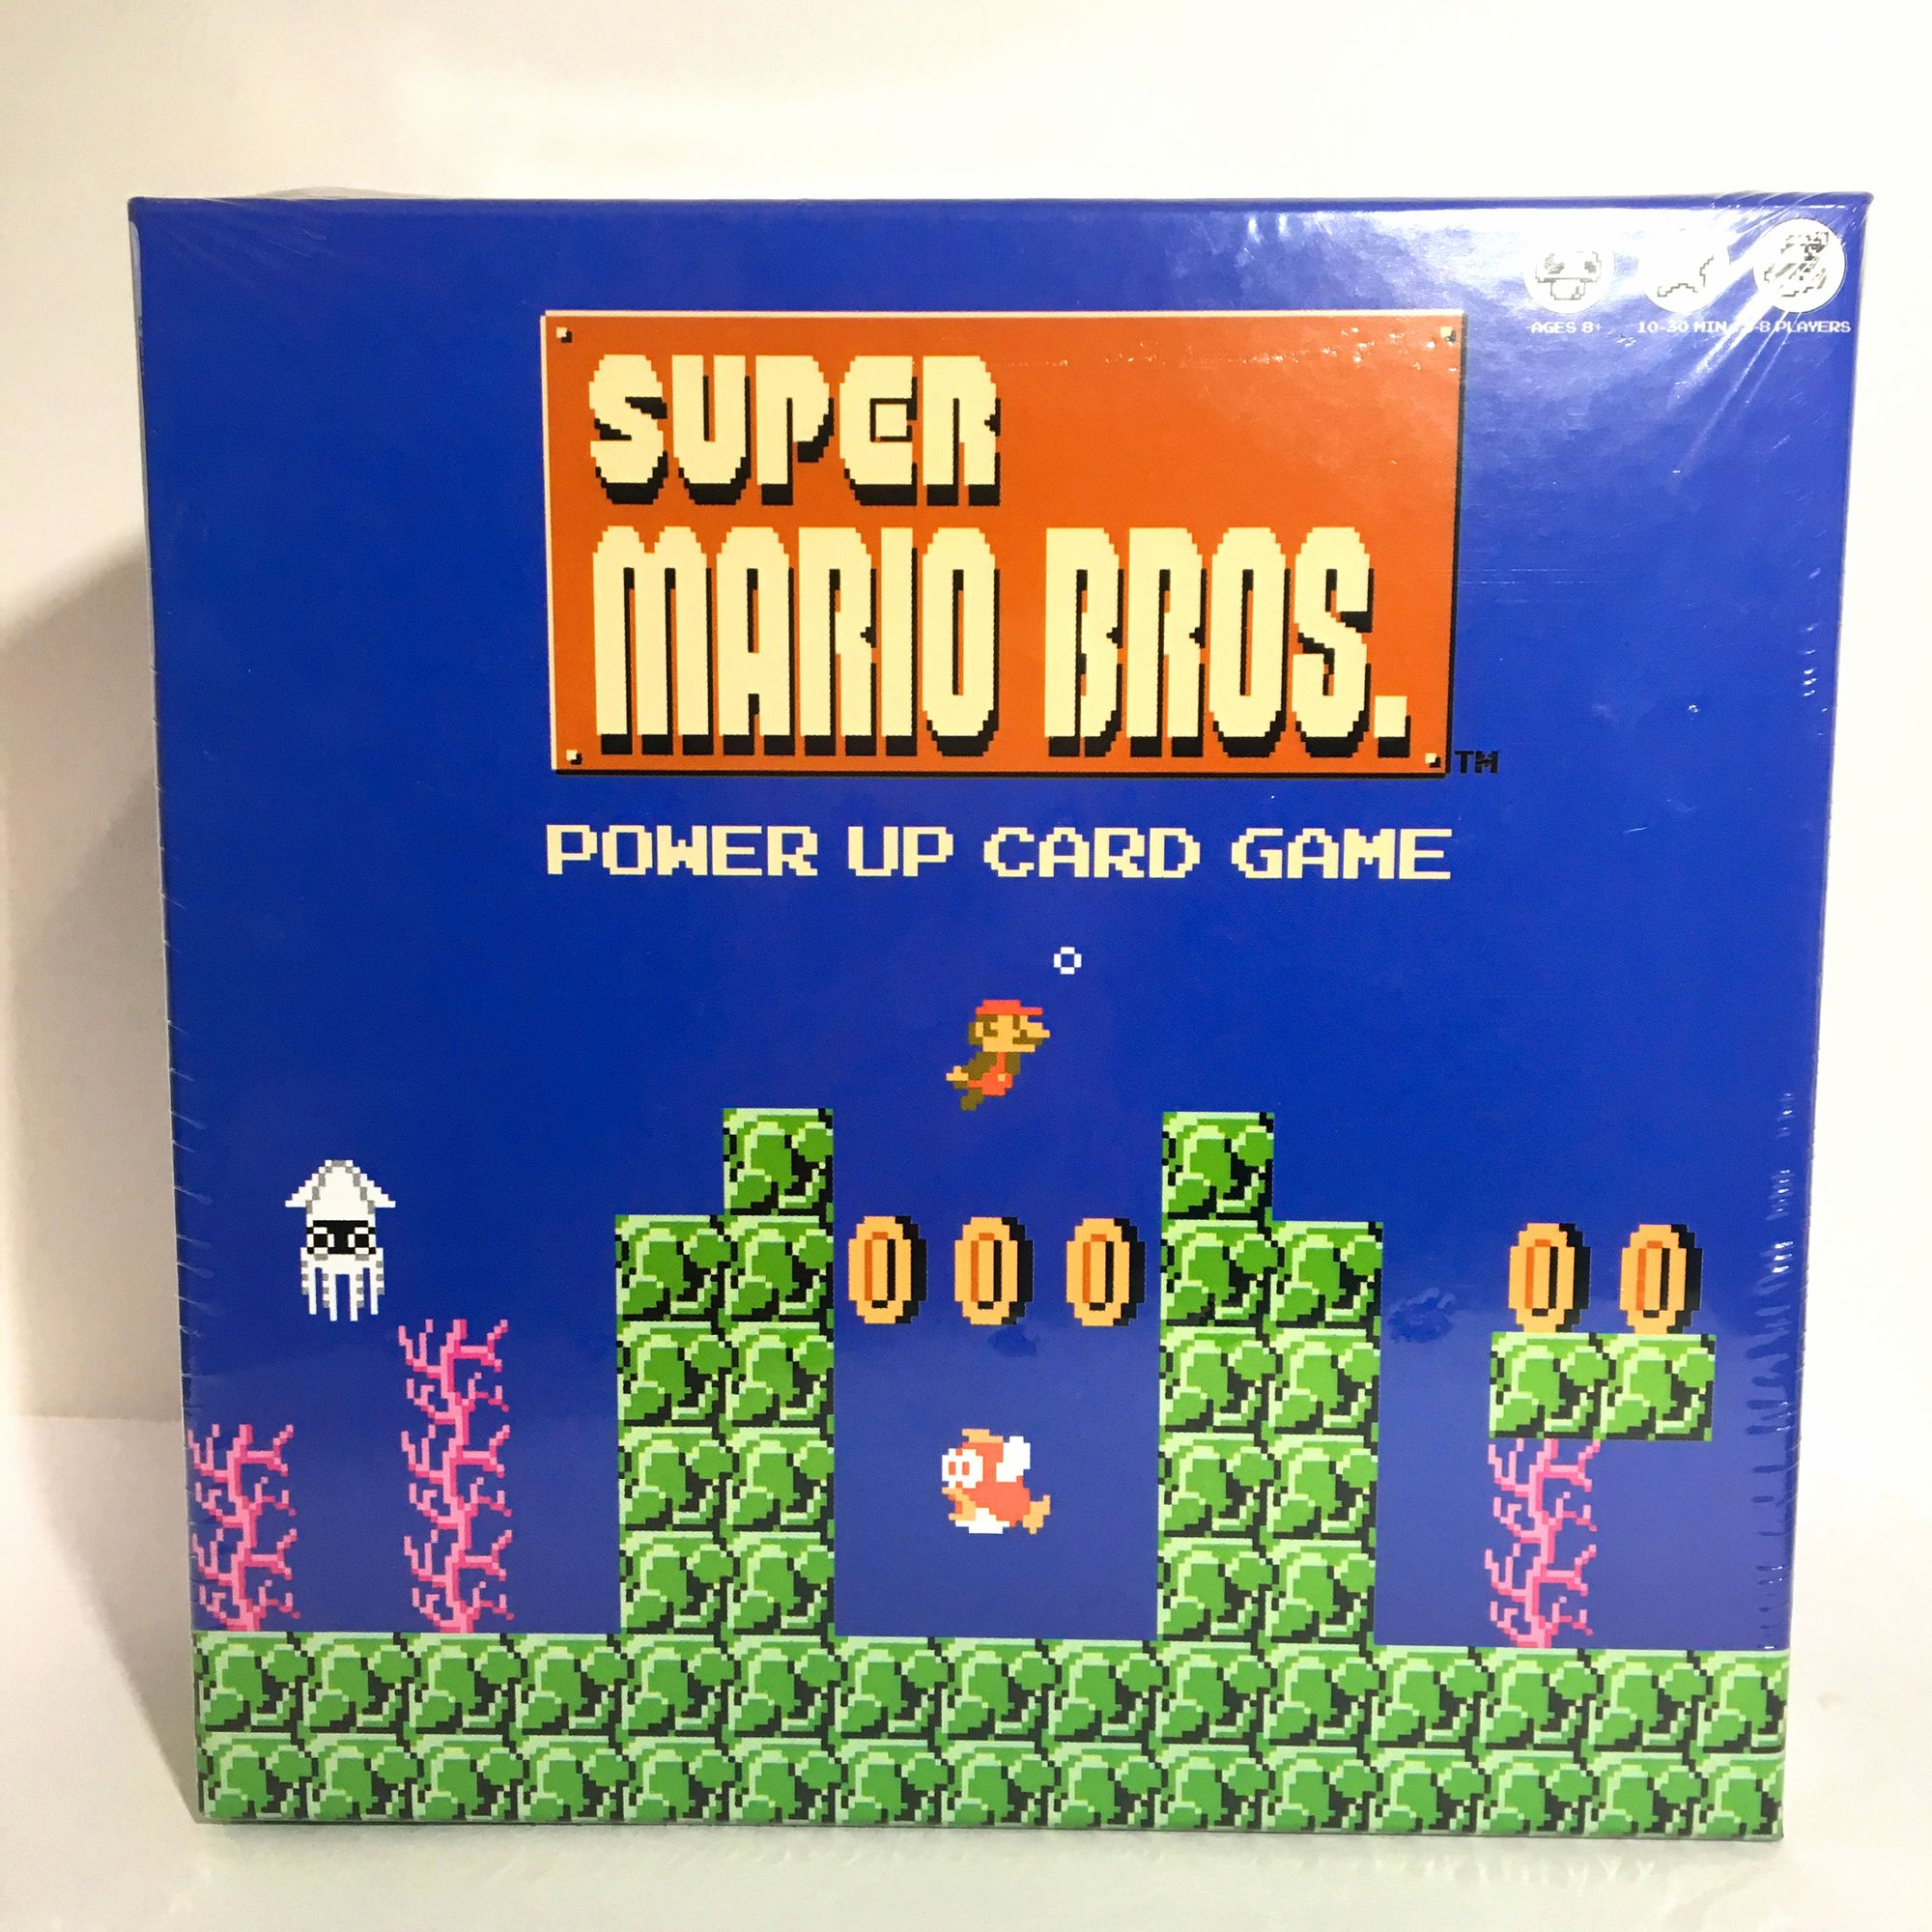 New Super Mario Bros Power Up Card Game Nintendo Fast Shipping Mario Bros Super Mario Bros Card Games